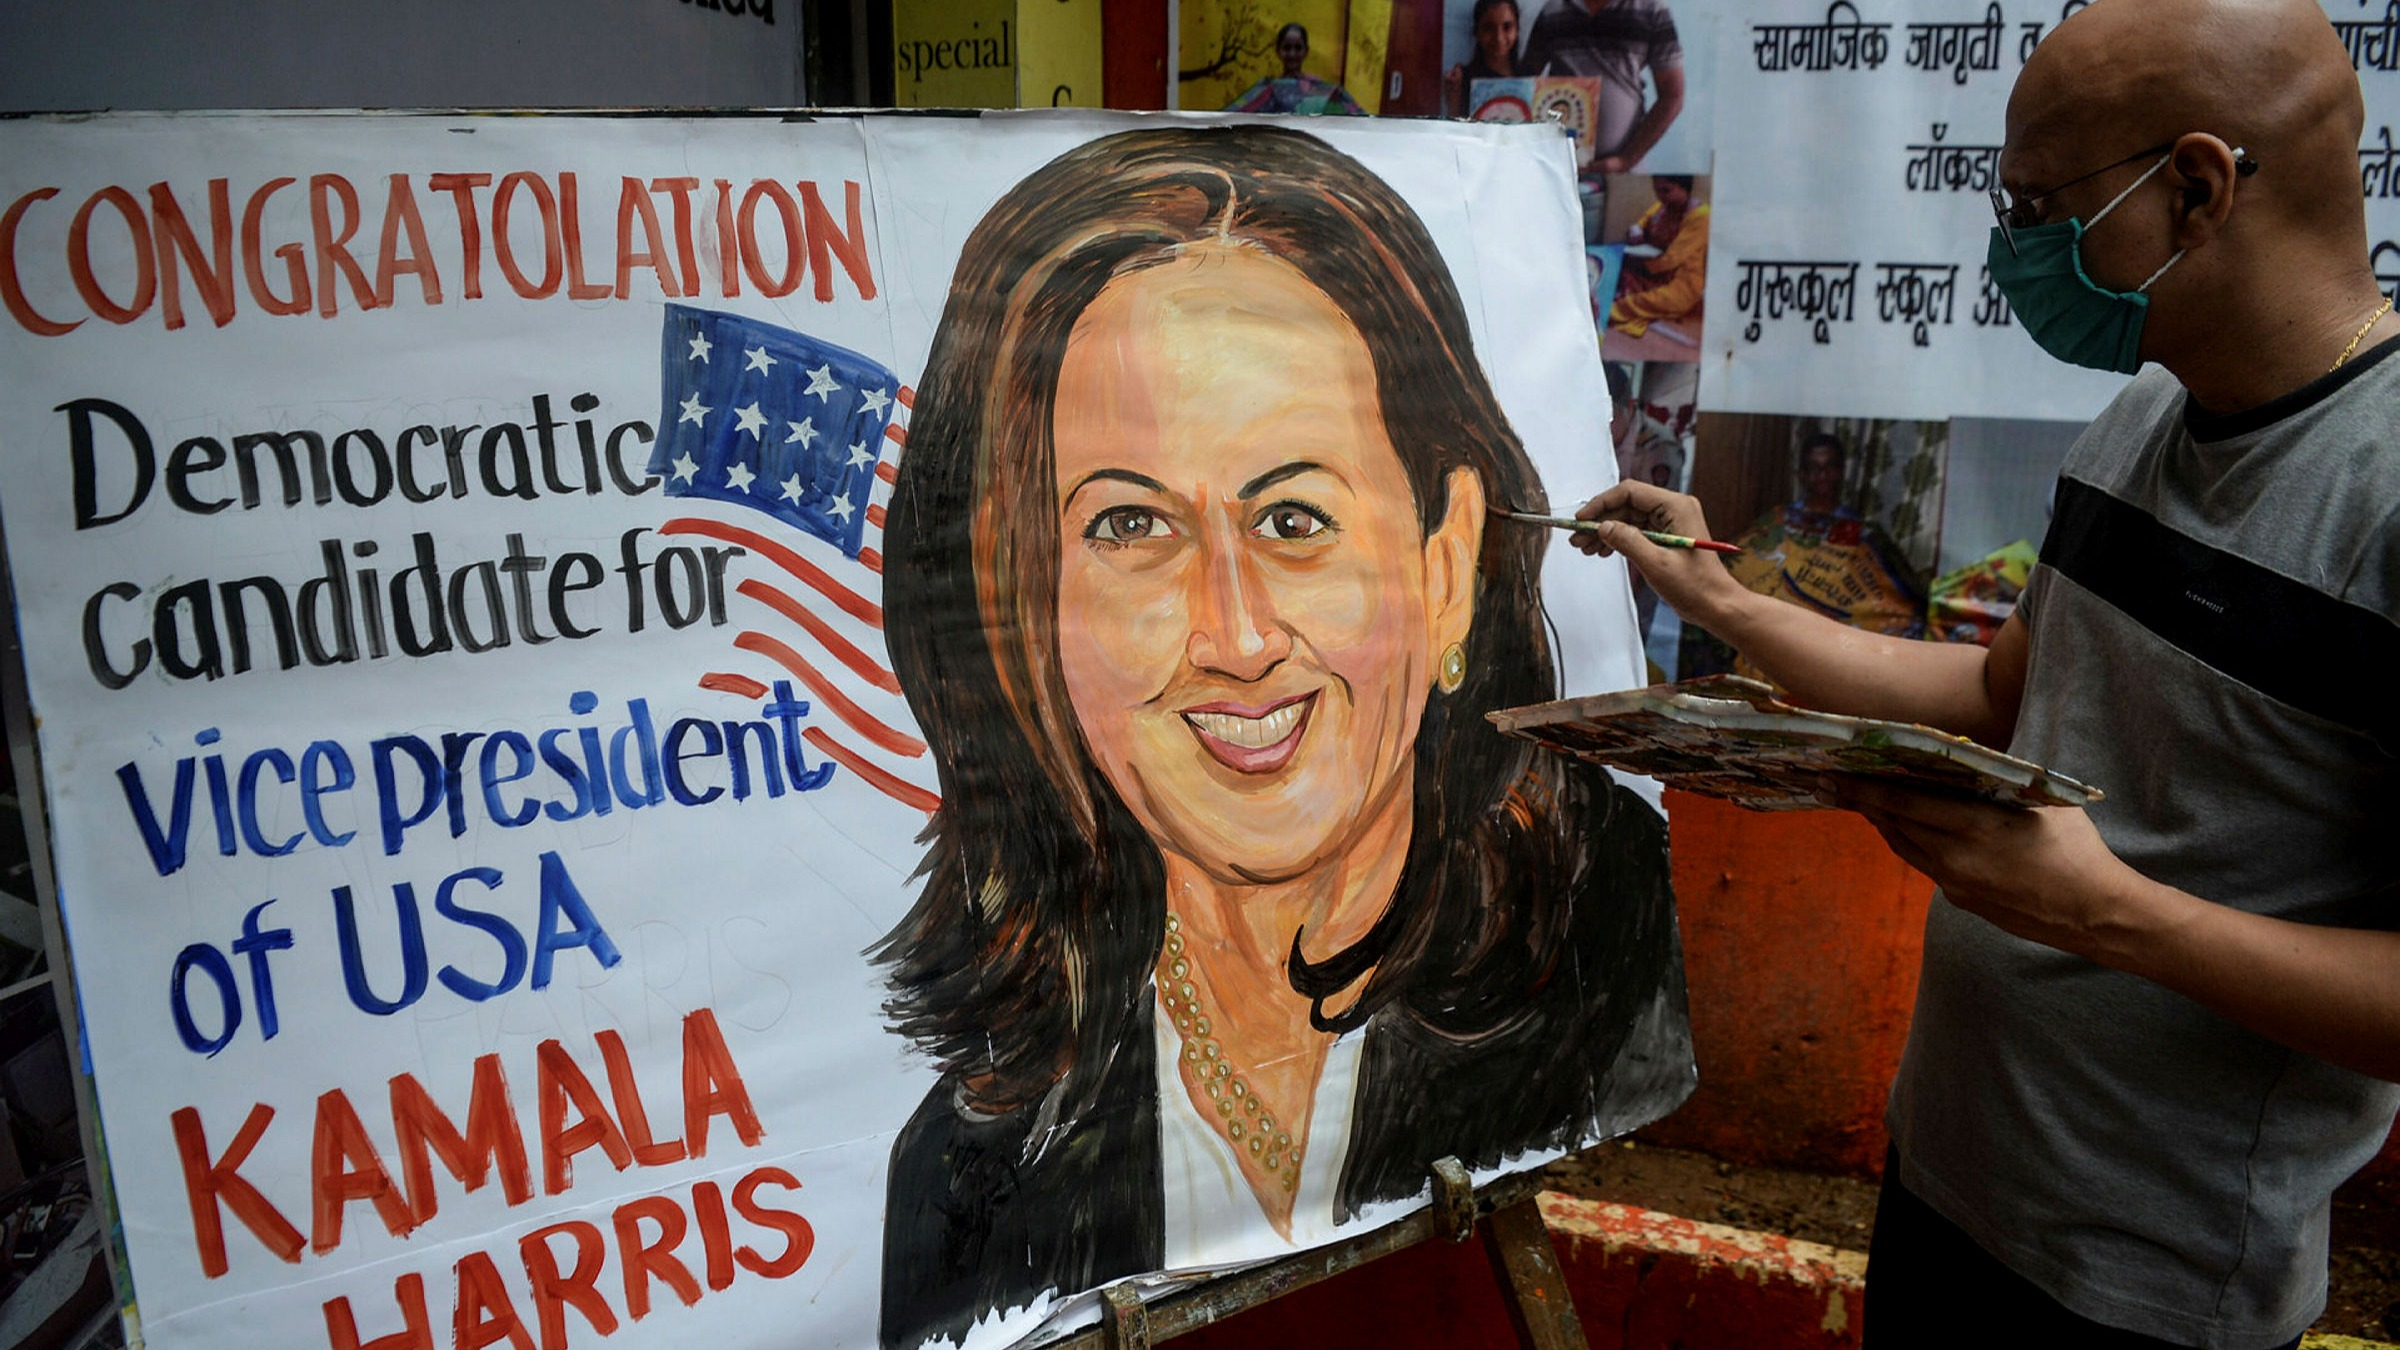 Kamala Harris Nomination Adds To New Delhi Unease Financial Times